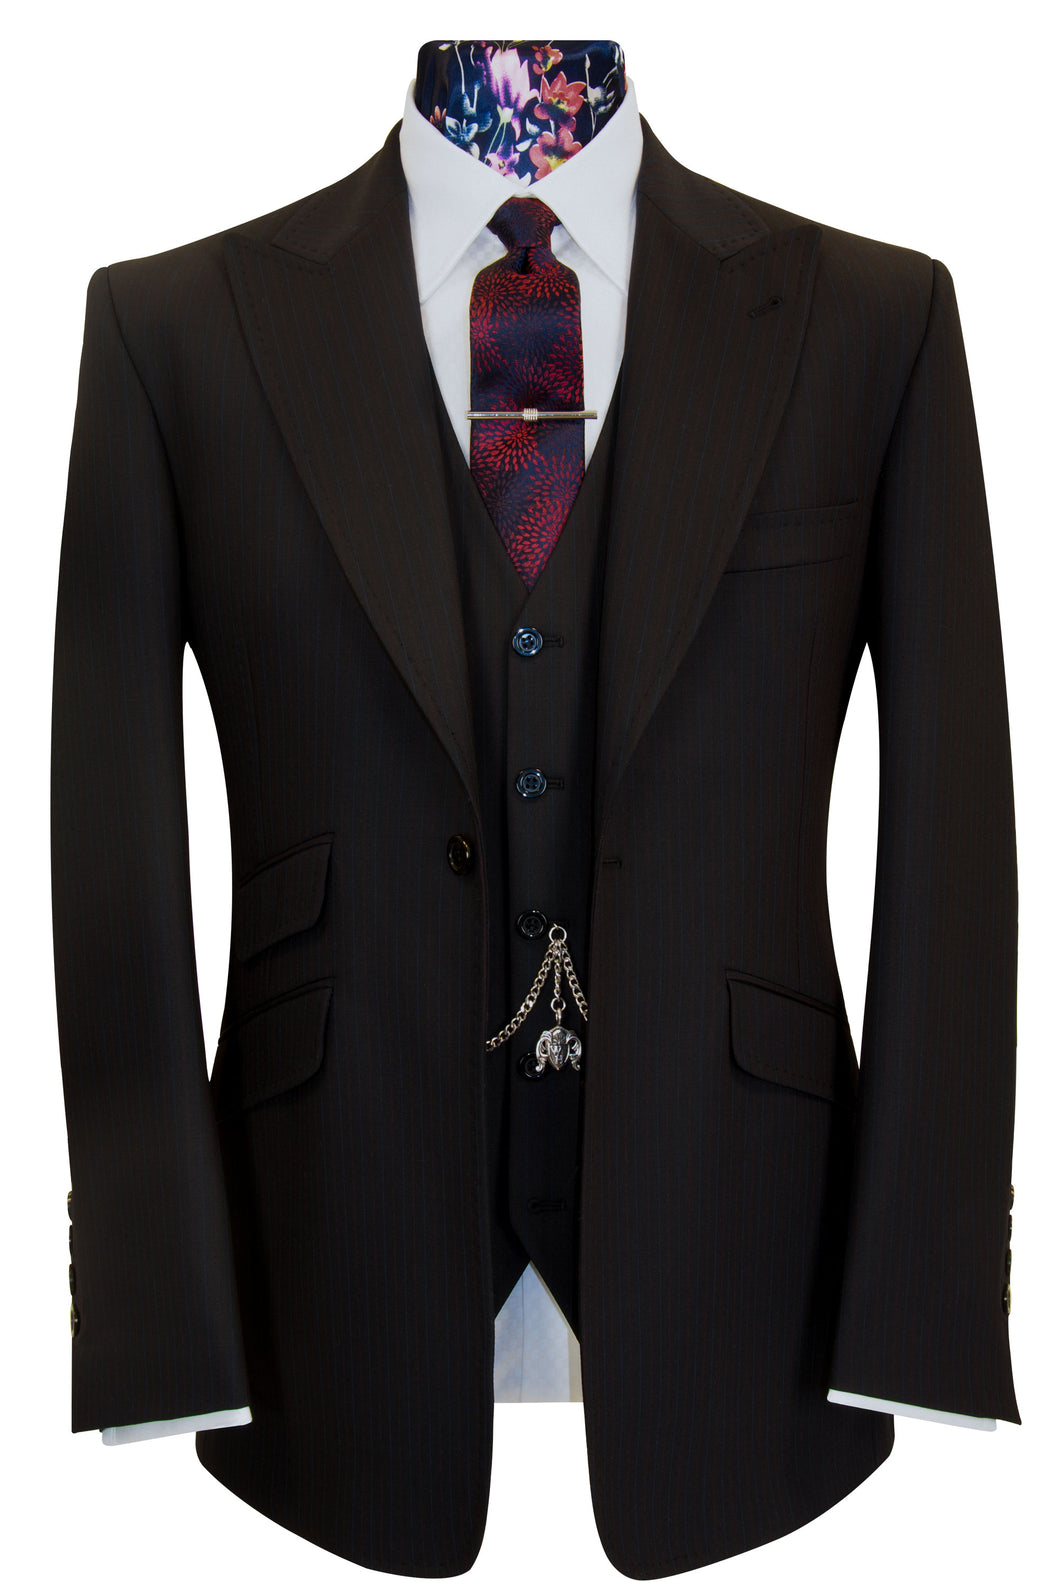 William Hunt Savile Row | The Eliot Black with Red and Blue Pinstripe Suit